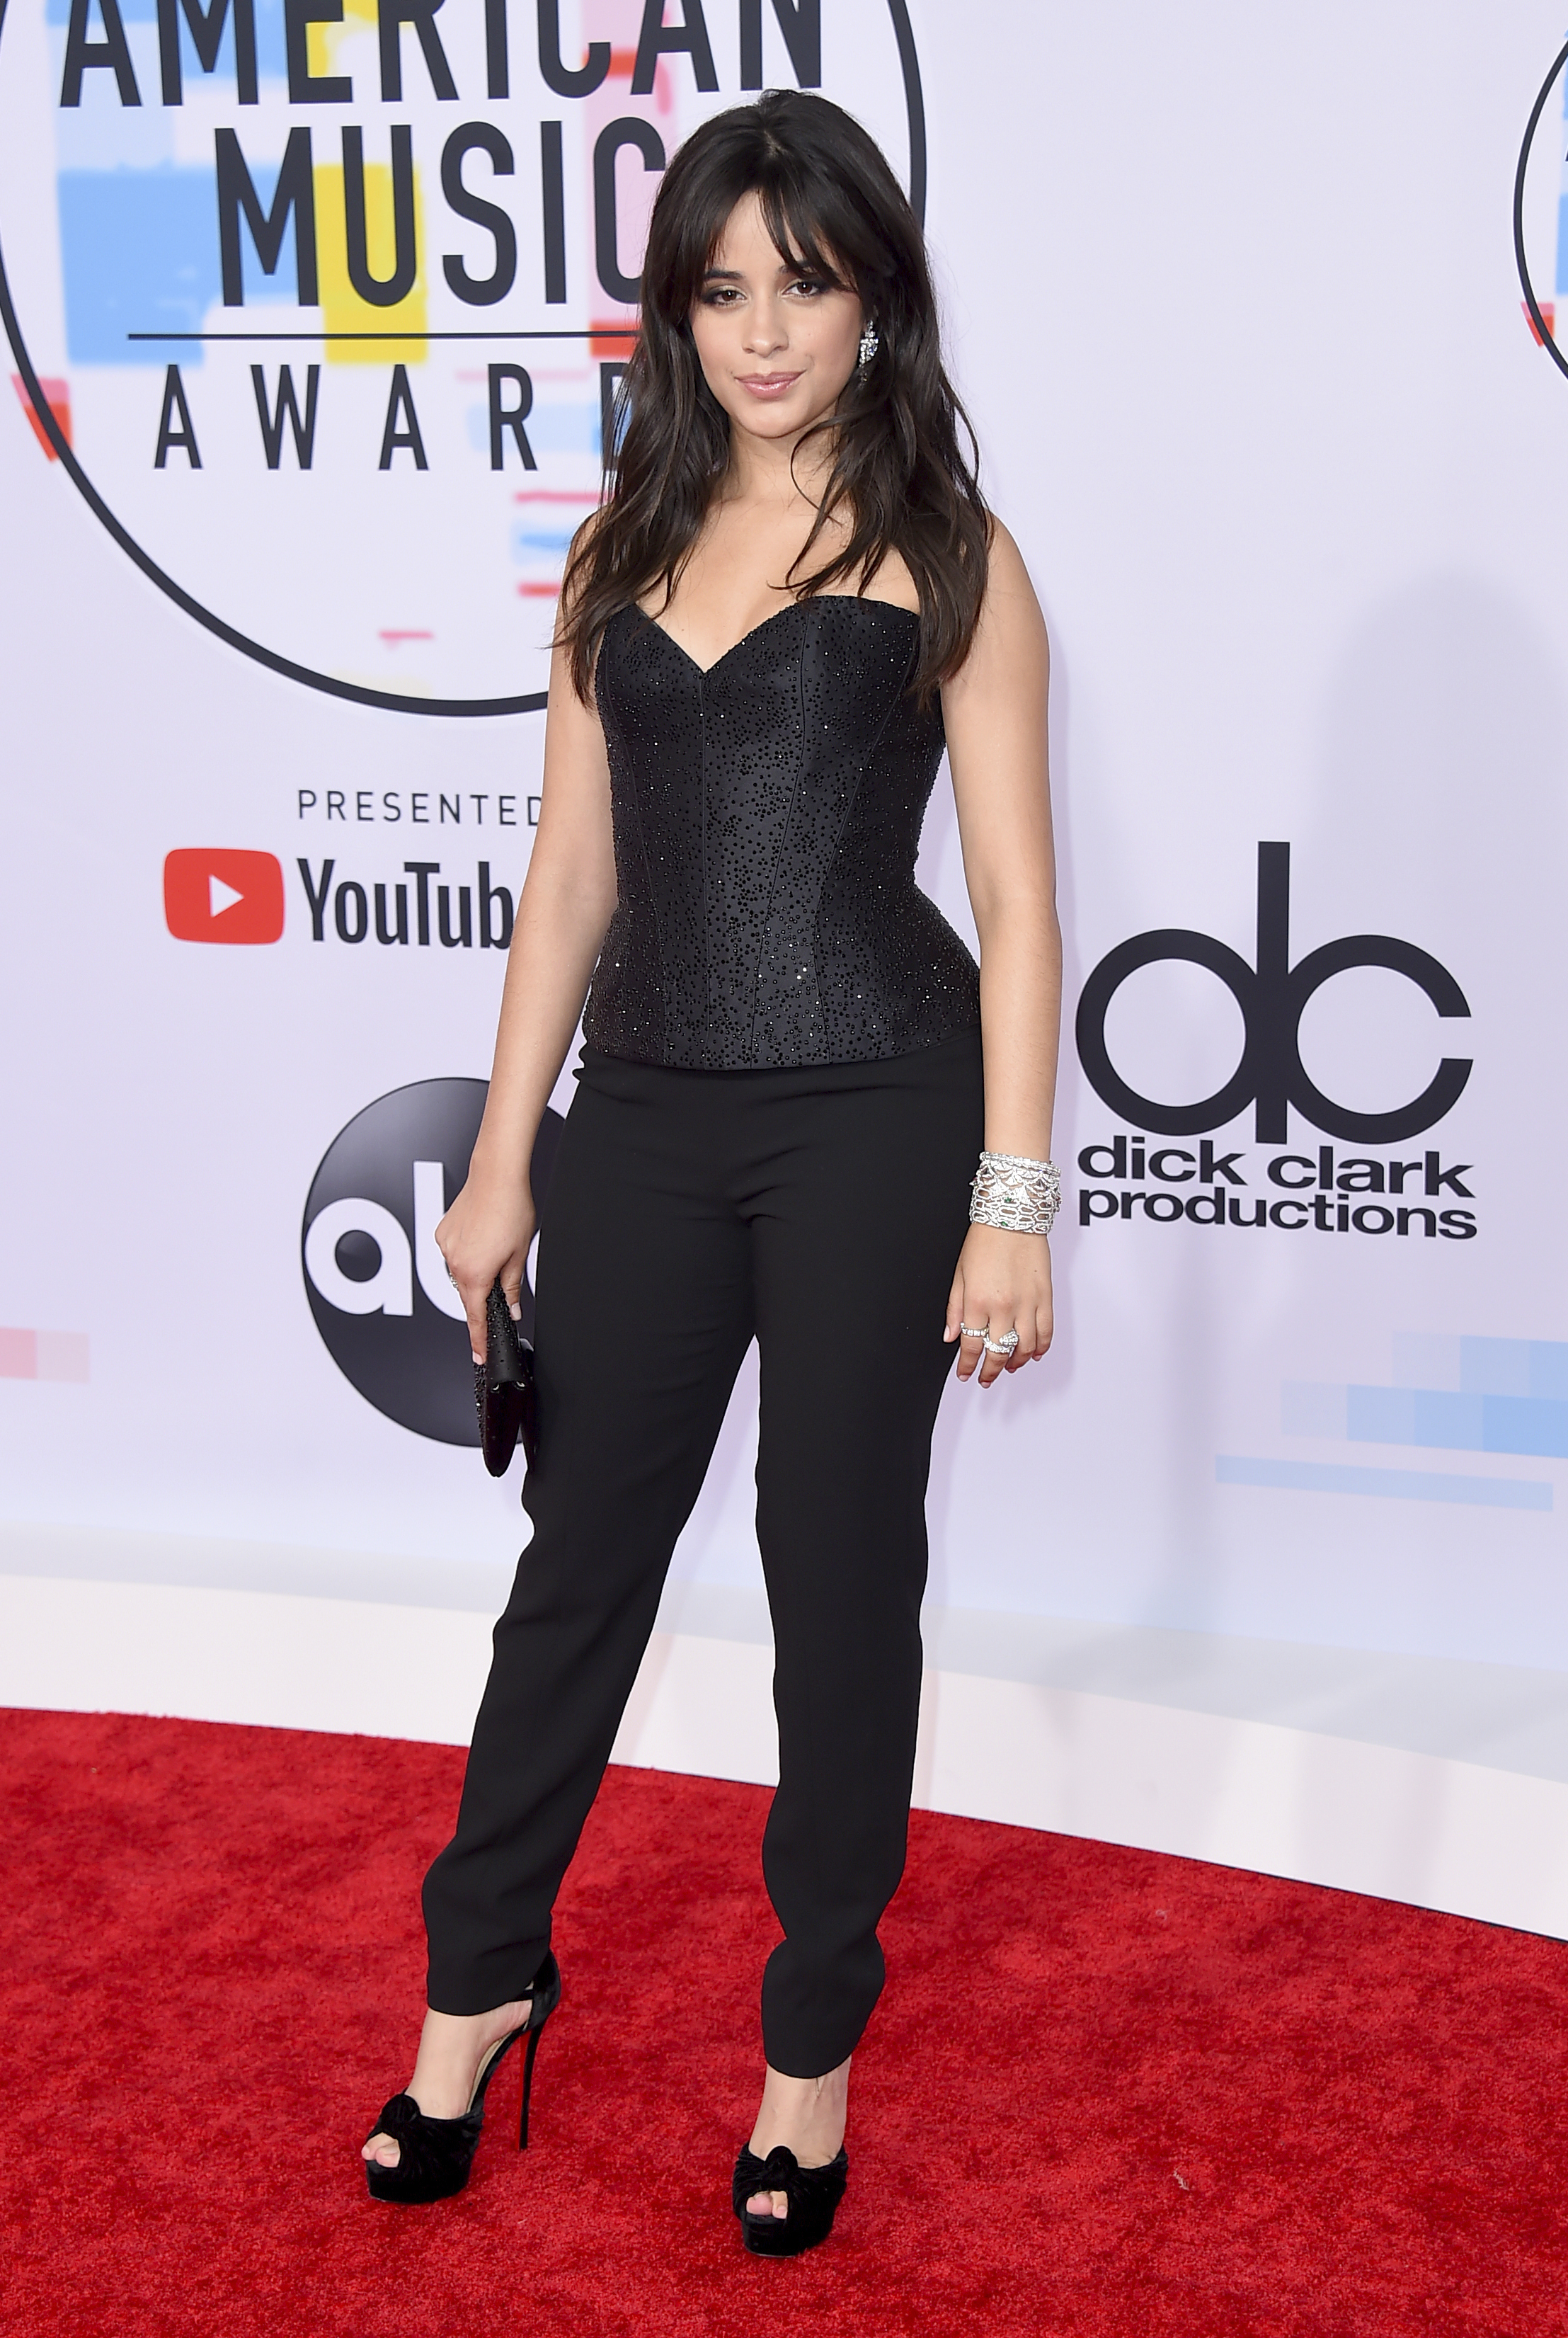 "<div class=""meta image-caption""><div class=""origin-logo origin-image none""><span>none</span></div><span class=""caption-text"">Camila Cabello arrives at the American Music Awards on Tuesday, Oct. 9, 2018, at the Microsoft Theater in Los Angeles. (Jordan Strauss/Invision/AP)</span></div>"